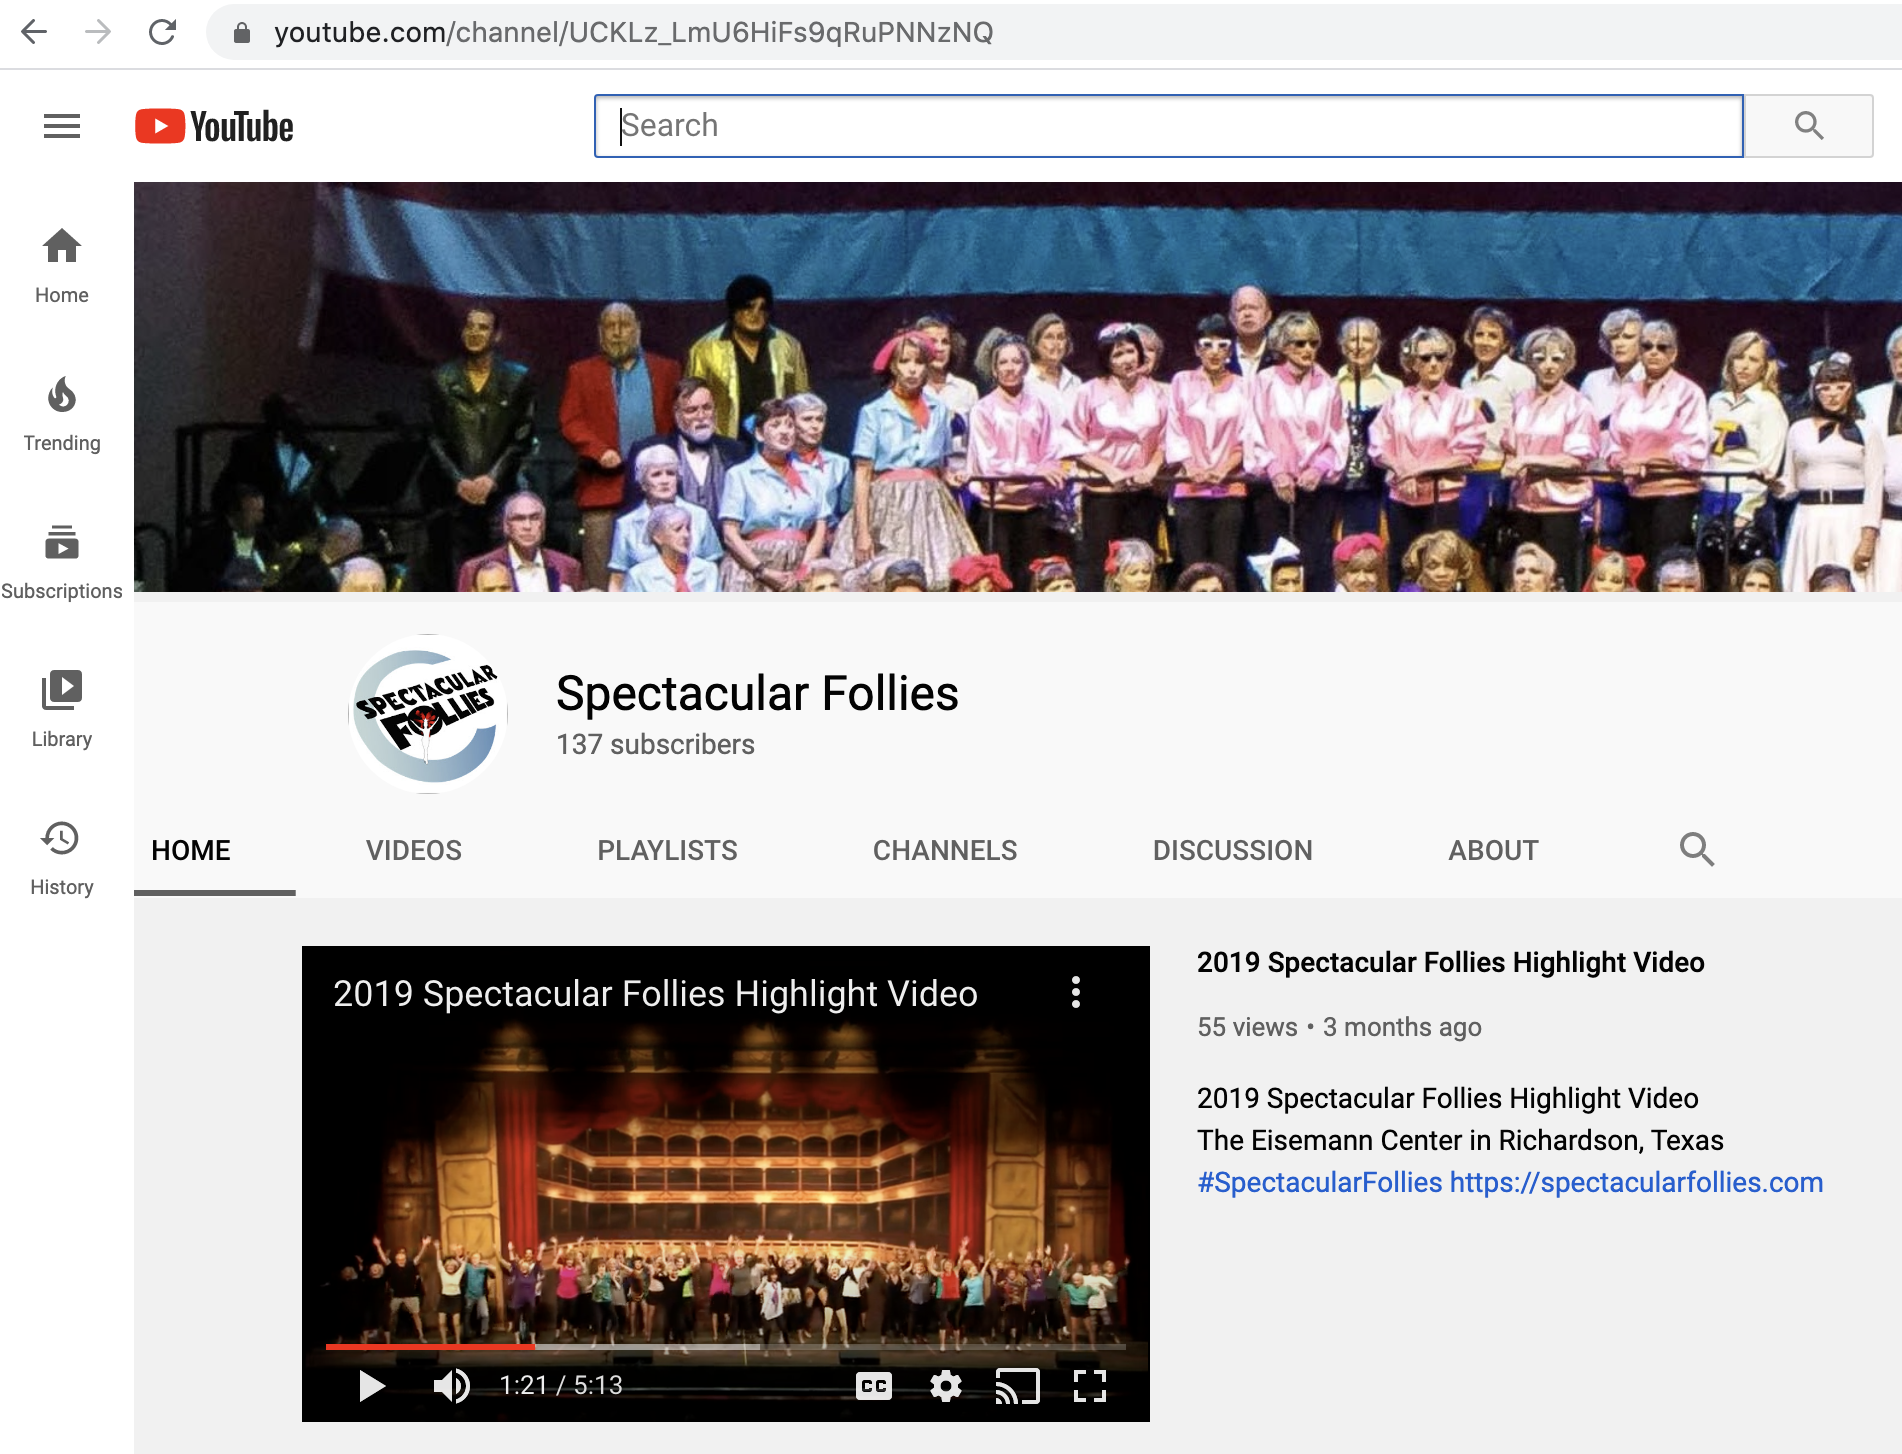 Spectacular-Follies-YouTube